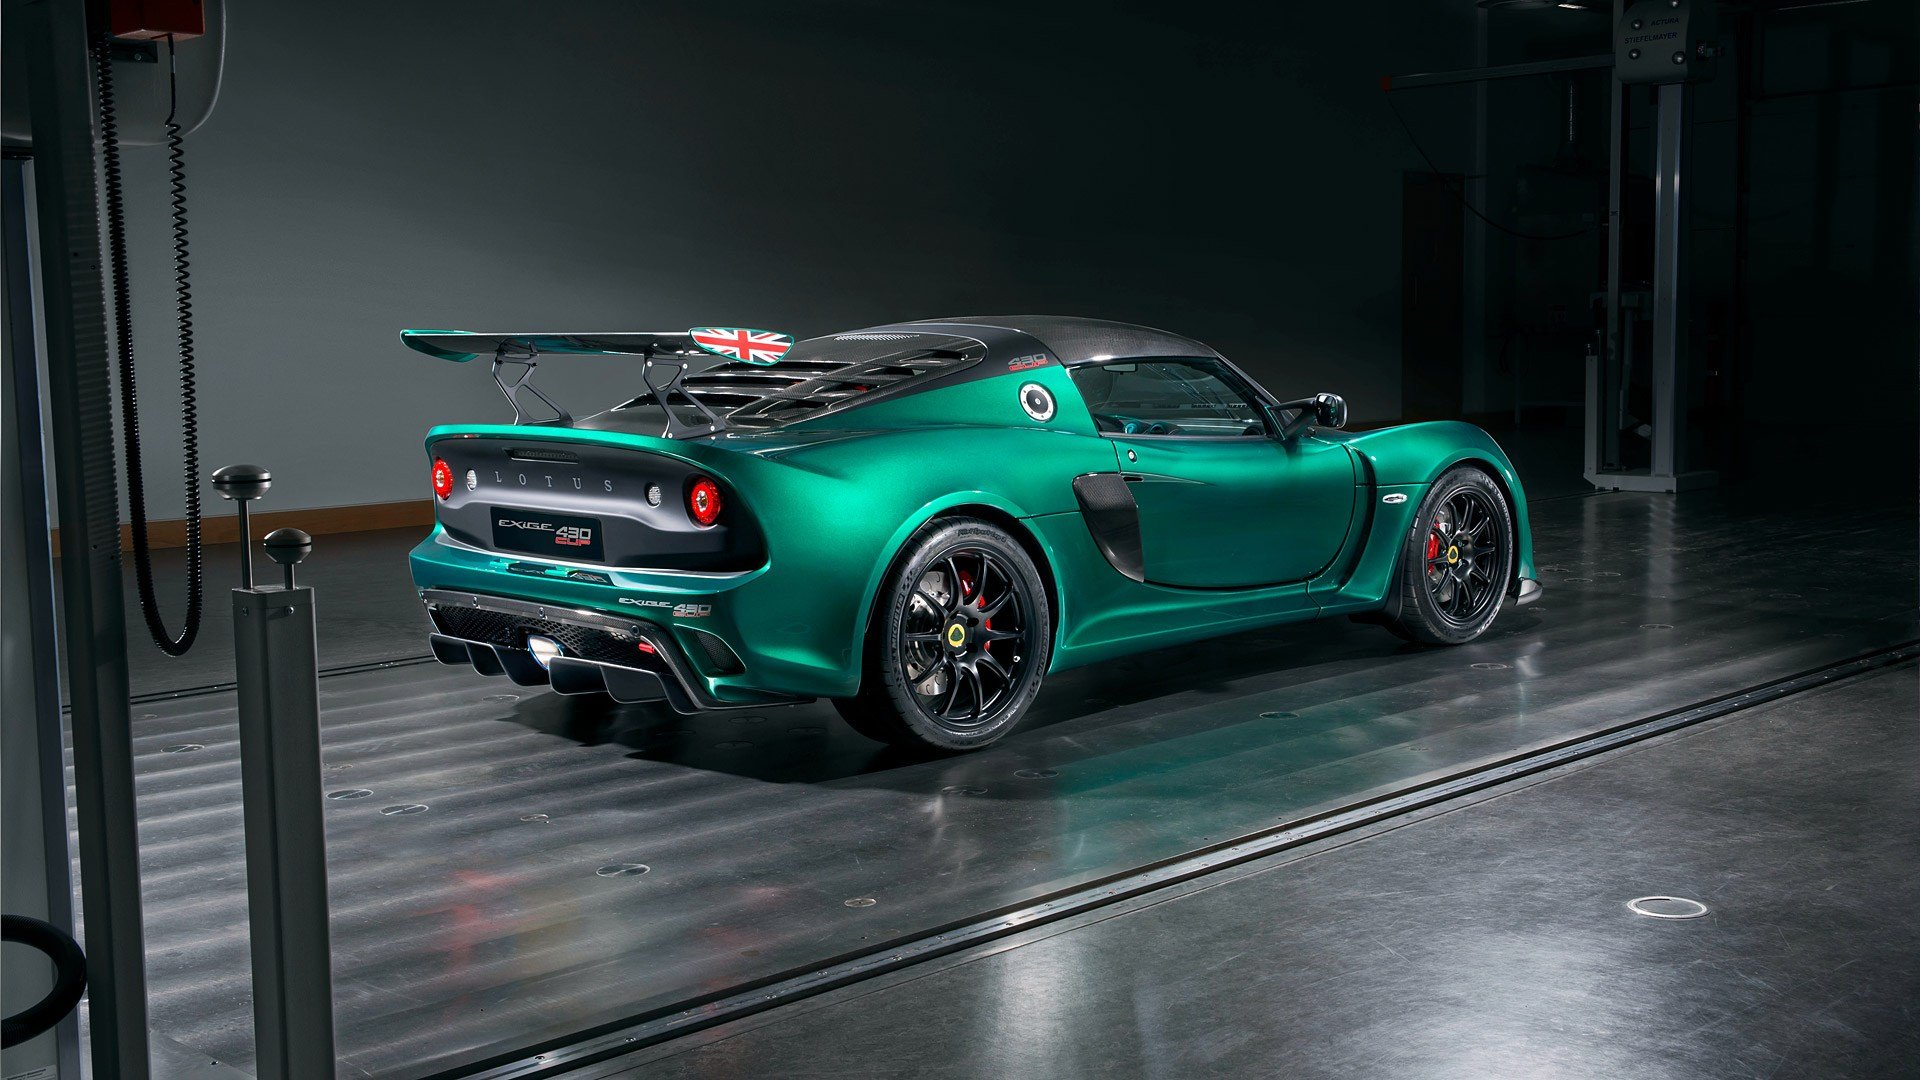 Latest 2018 Lotus Exige Cup 430 Wallpapers Hd Images Wsupercars Free Download